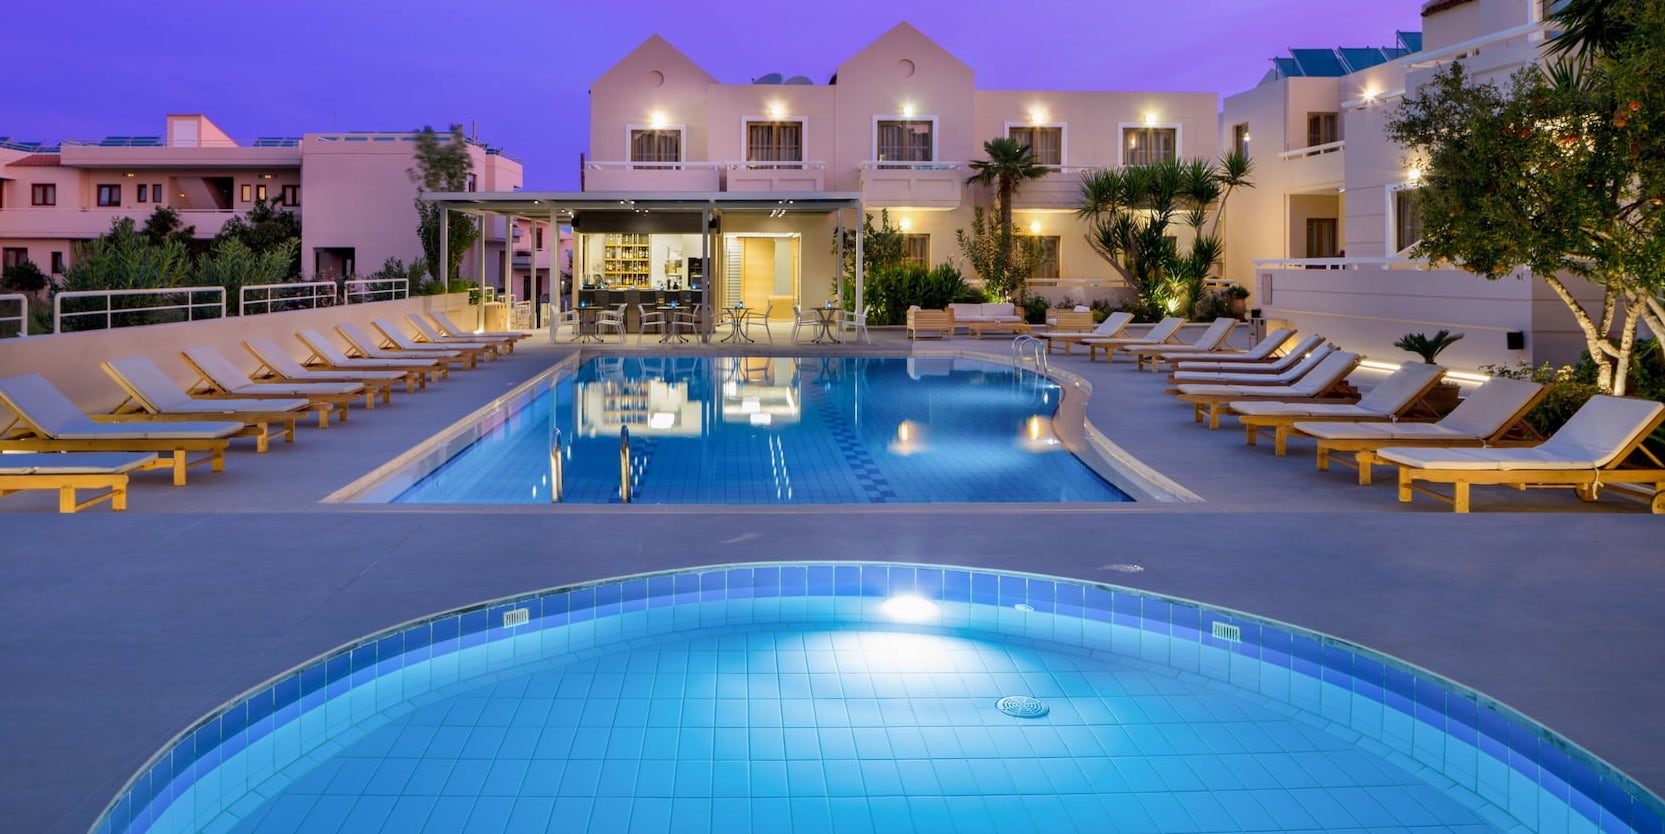 View of the two swimming pools in the Oscar Suites & Village hotel in Chania.